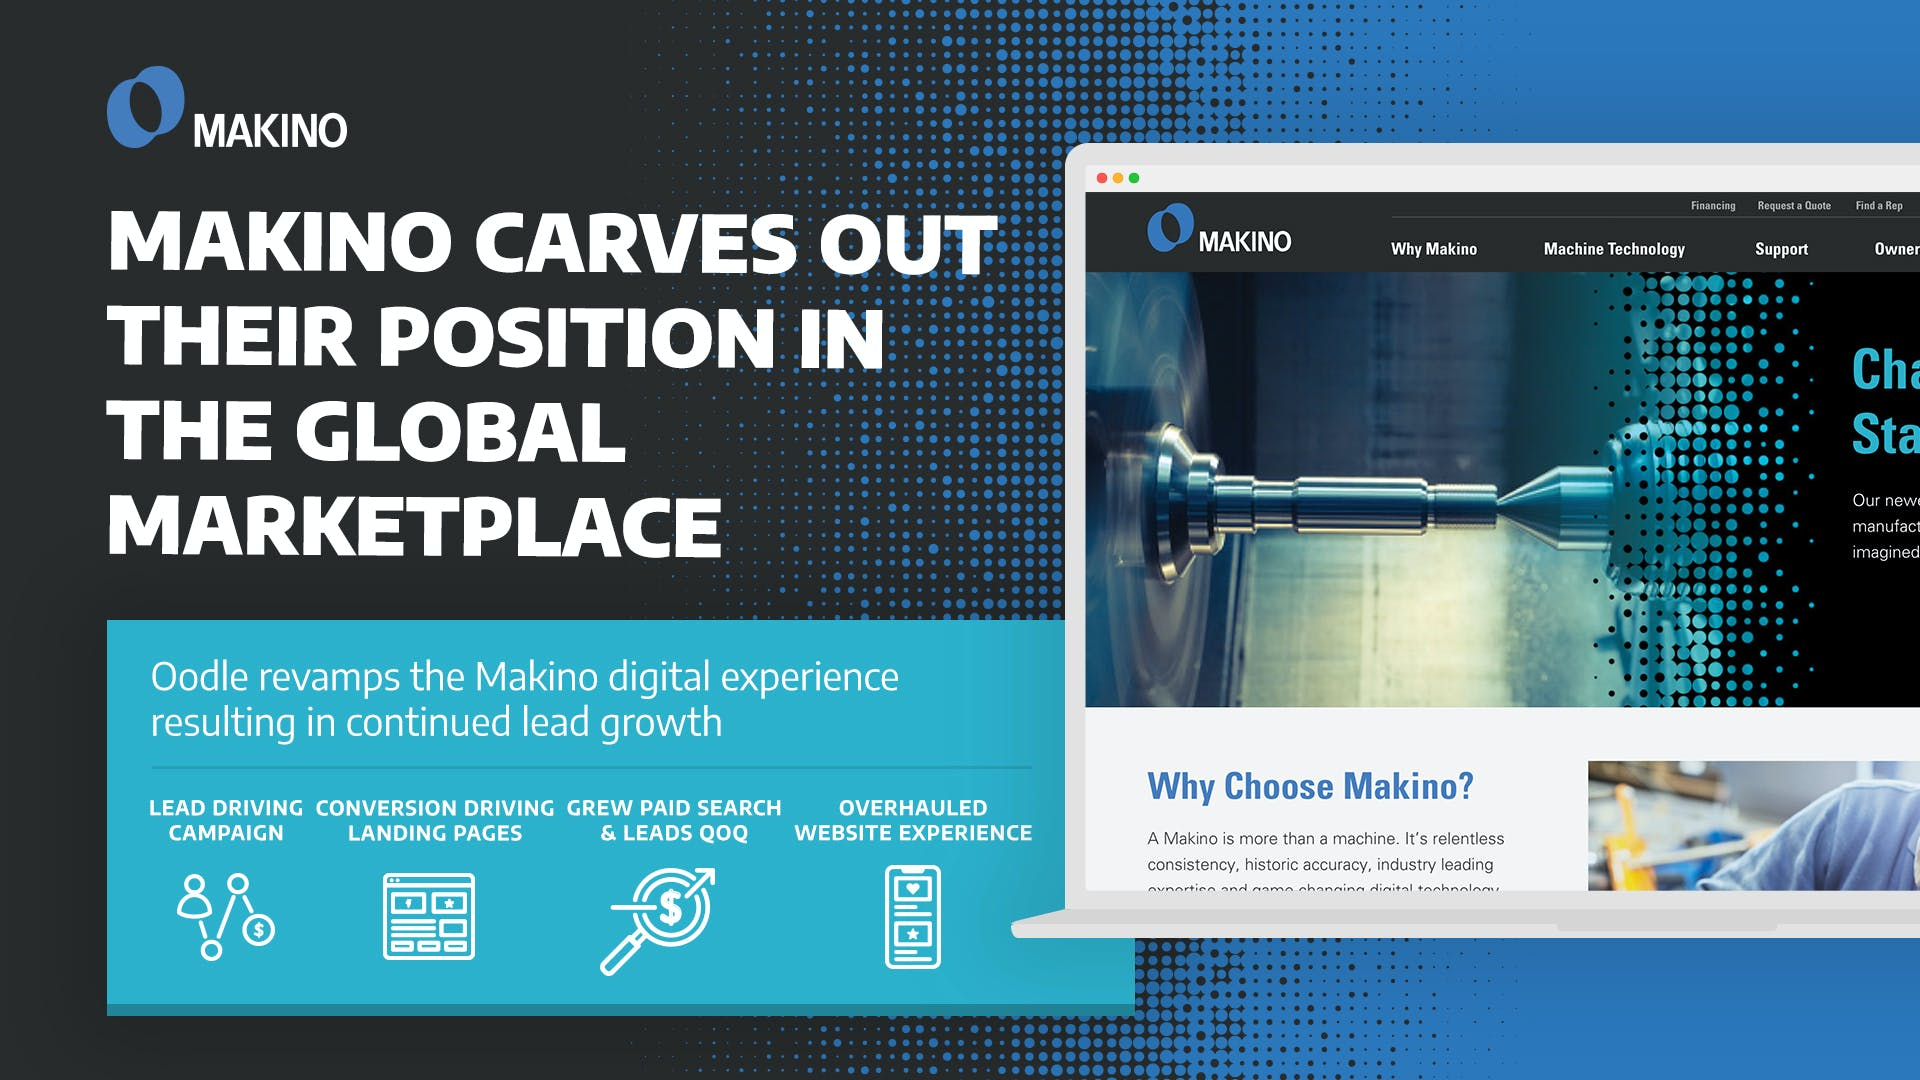 Makino carves out their position in the global marketplace